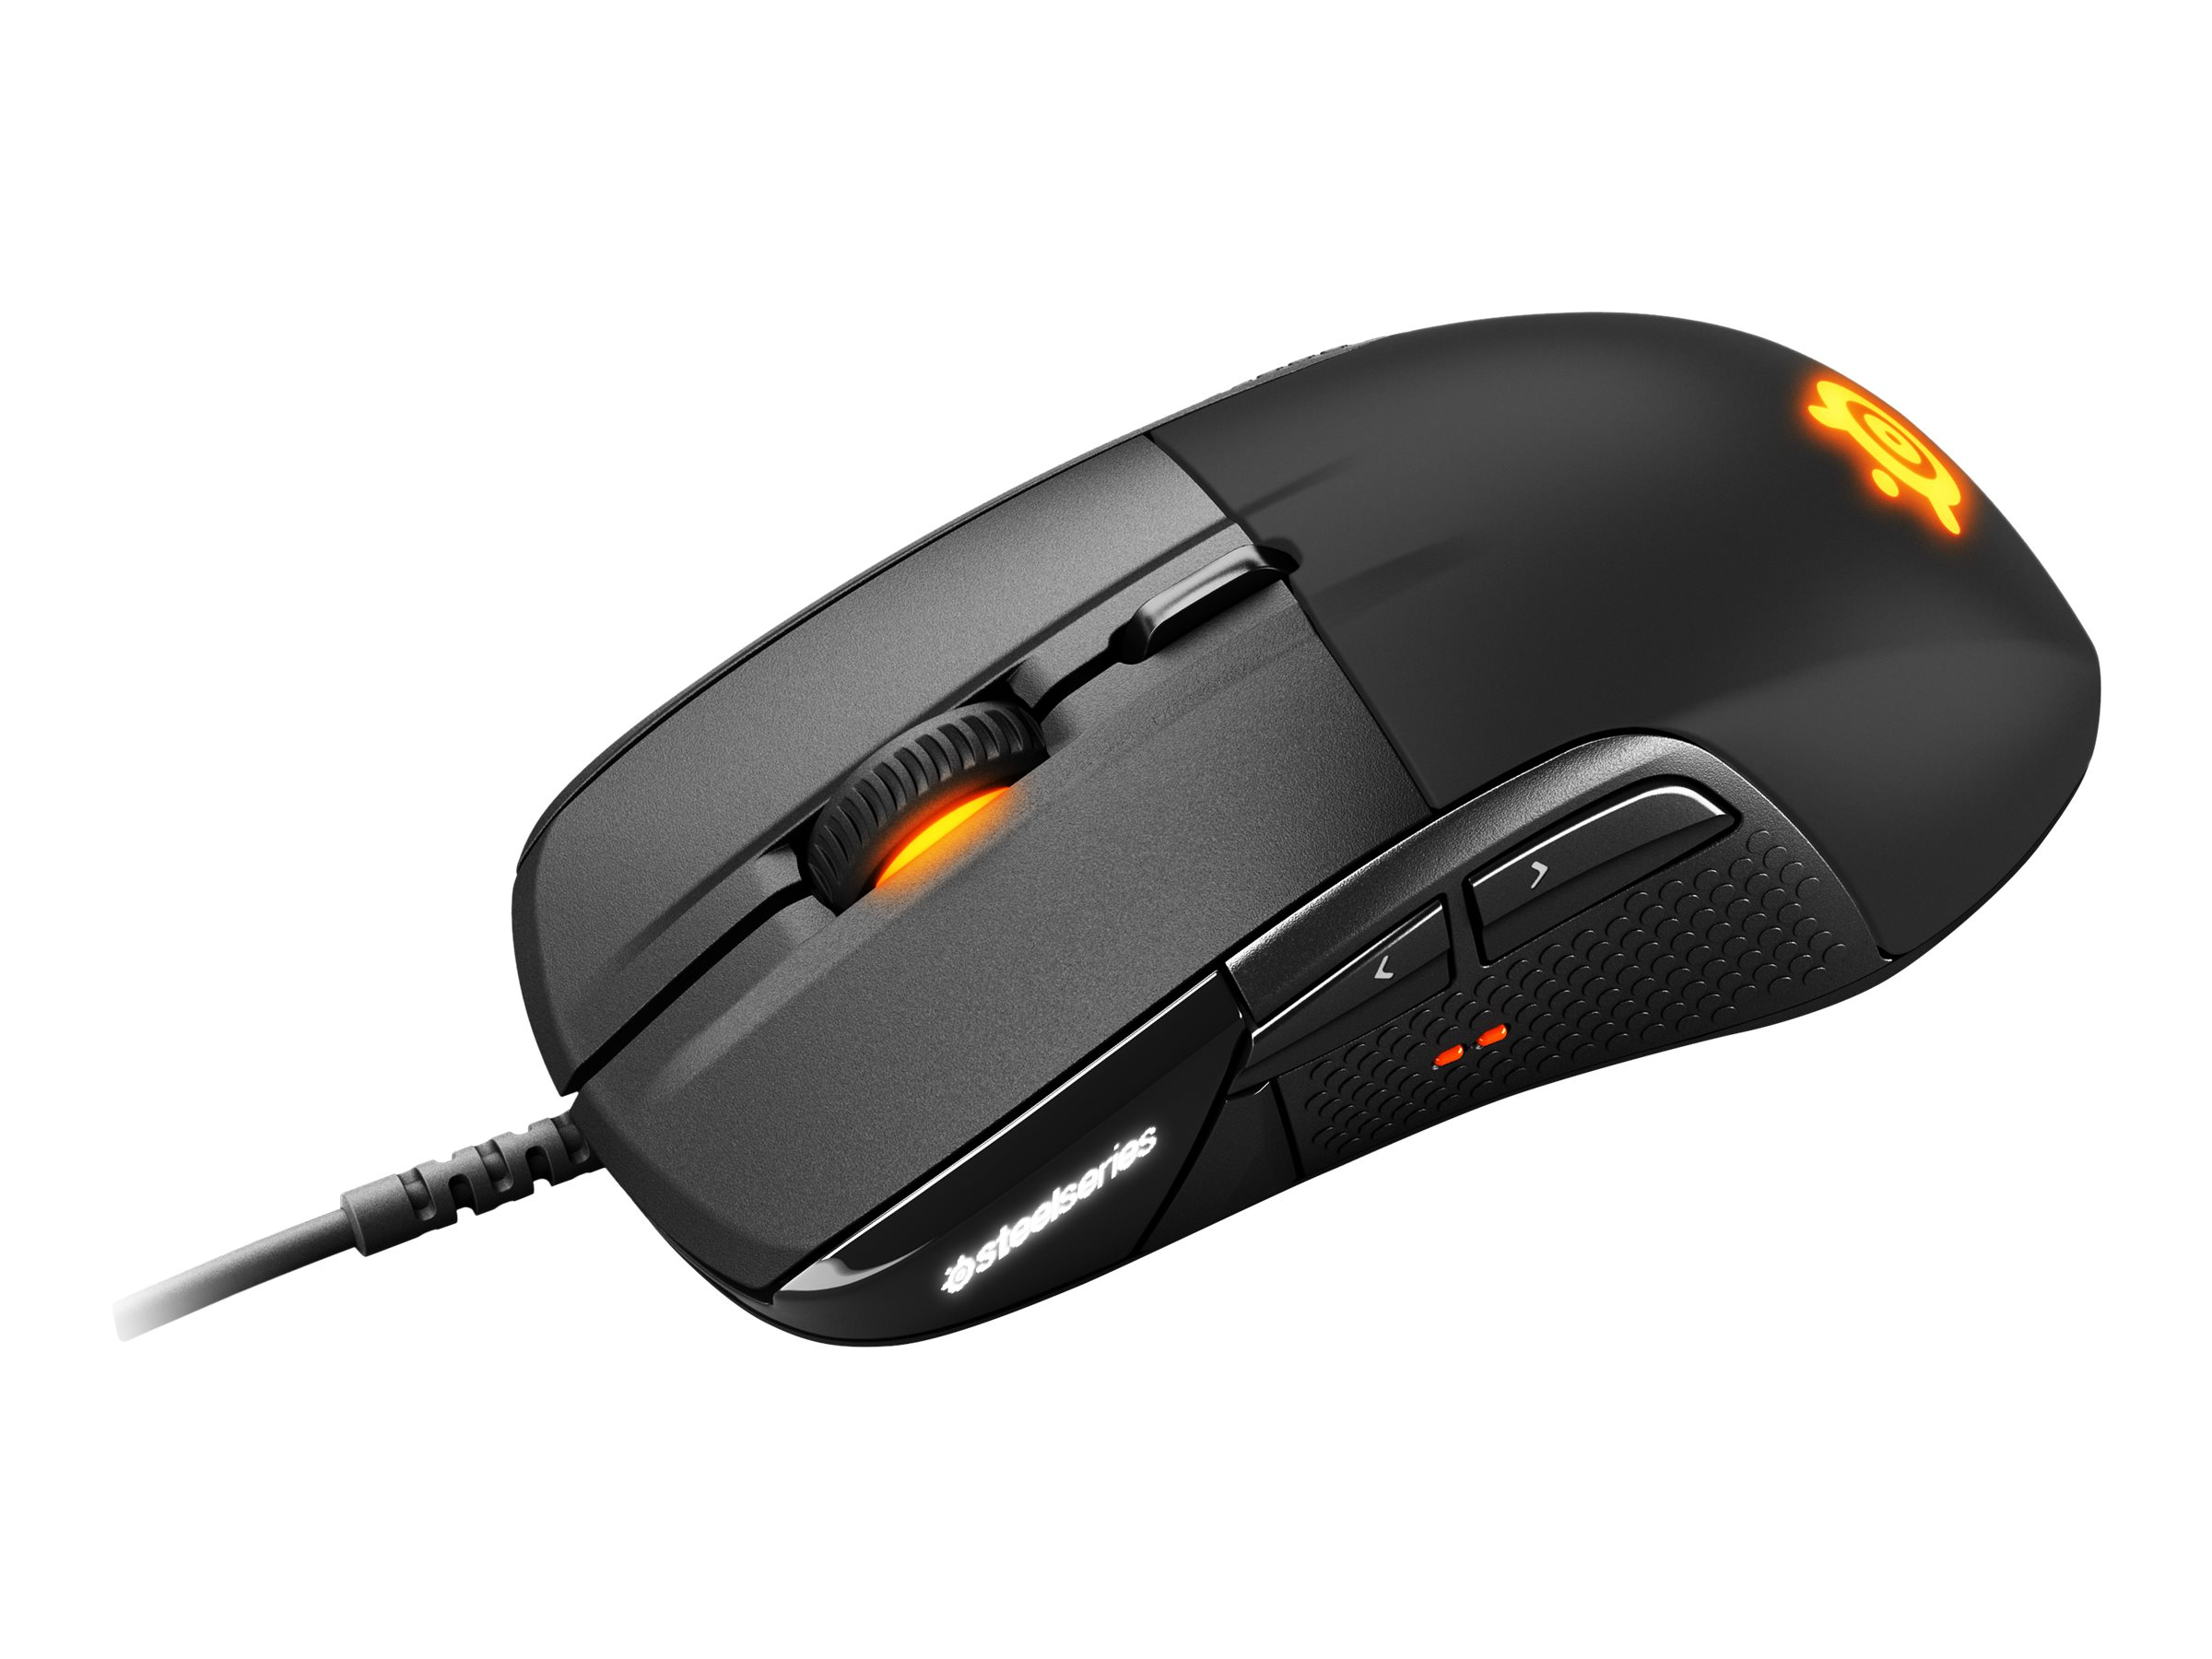 SteelSeries Rival 710 - mouse - USB